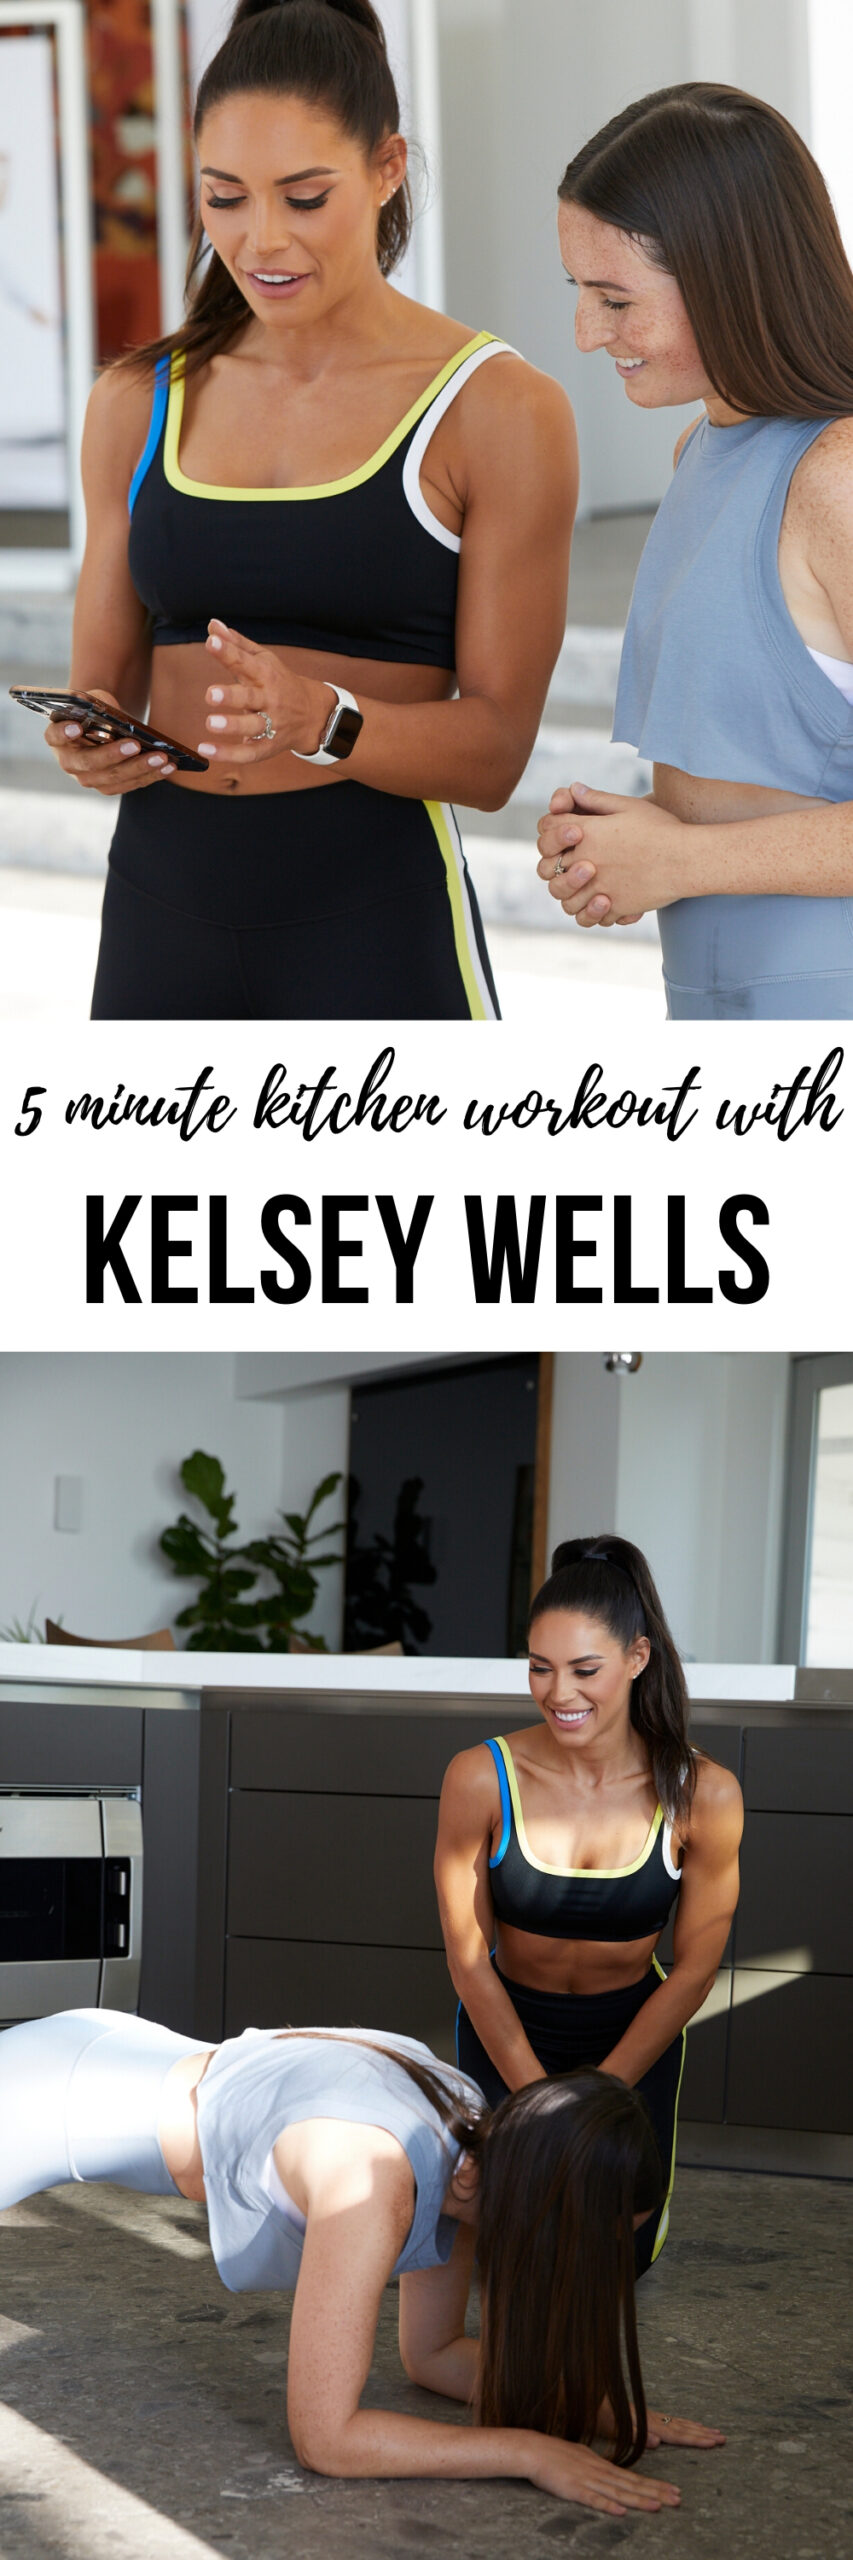 kitchen workout with kelsey wells